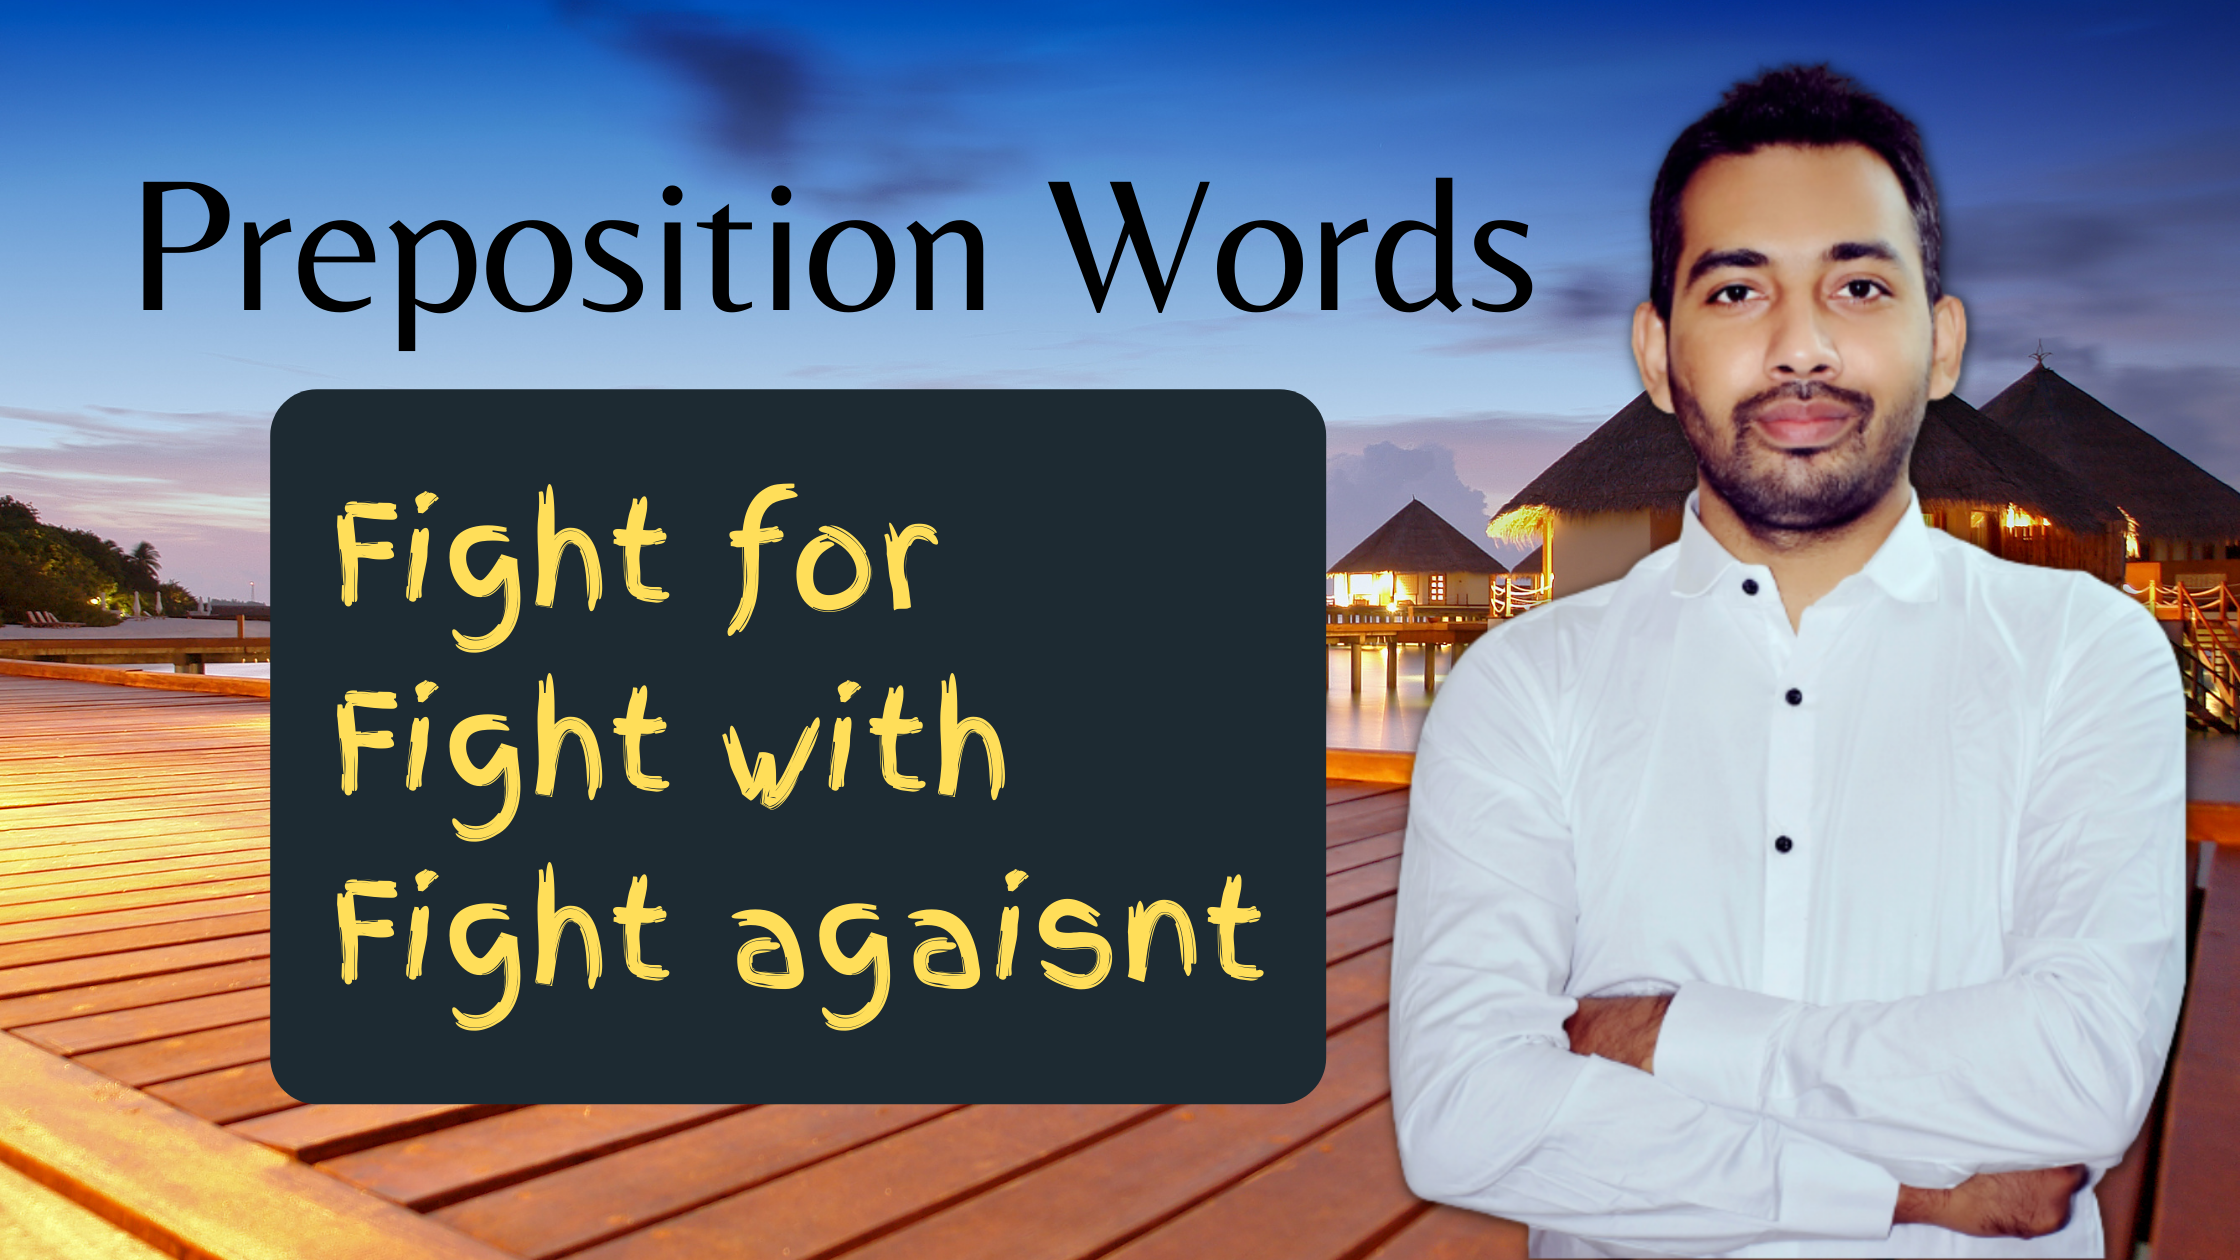 Preposition words with fight